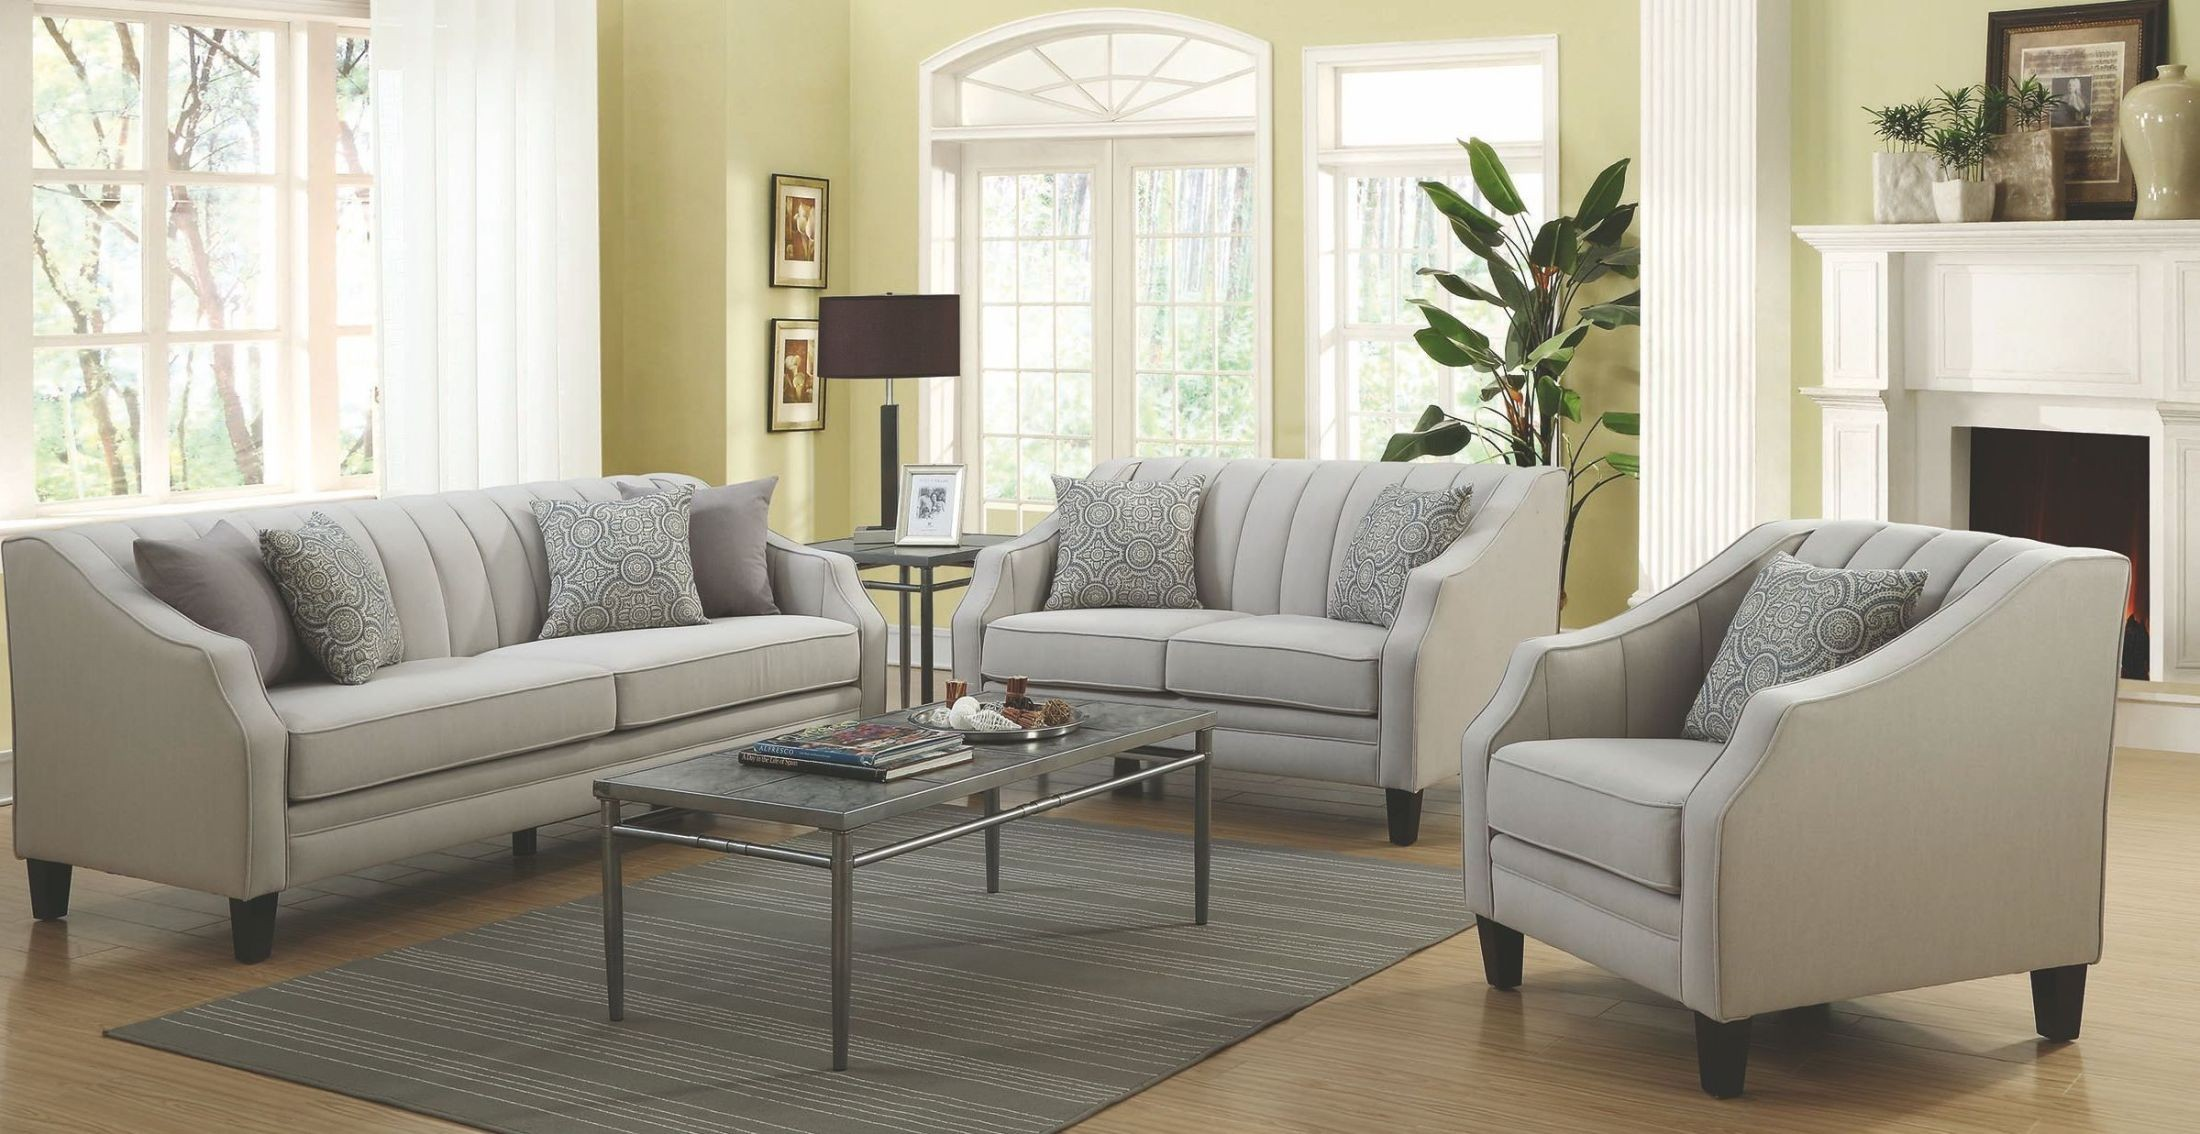 Loxley grey living room set 551141 coaster furniture for Grey front room furniture